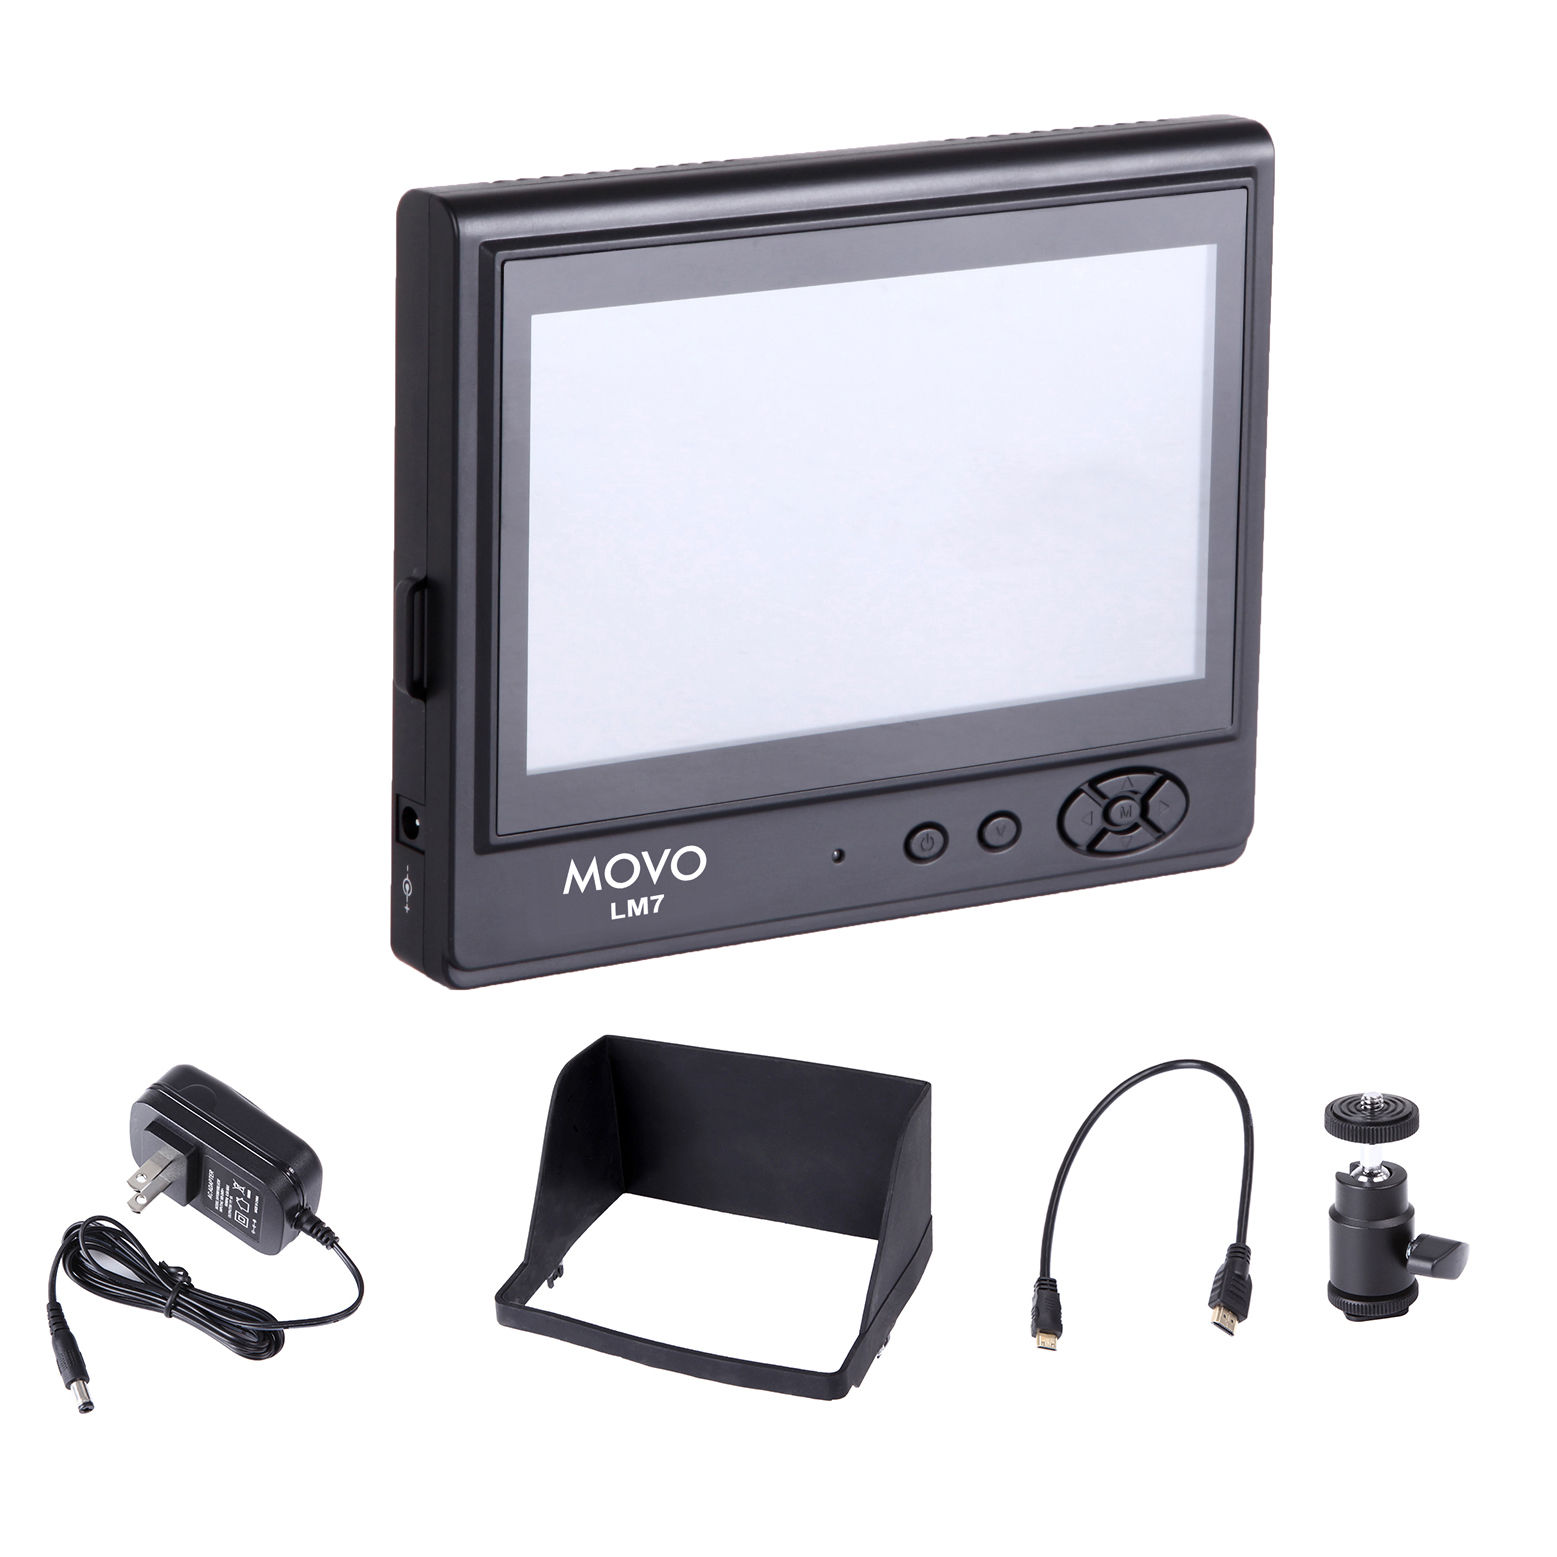 """Movo Photo LVM-7 7"""" LCD On-Camera Field Video Monitor with Sun Shade, AC Adapter, Battery Plate & HDMI/Component Inputs for DSLR Cameras & Camcorders"""